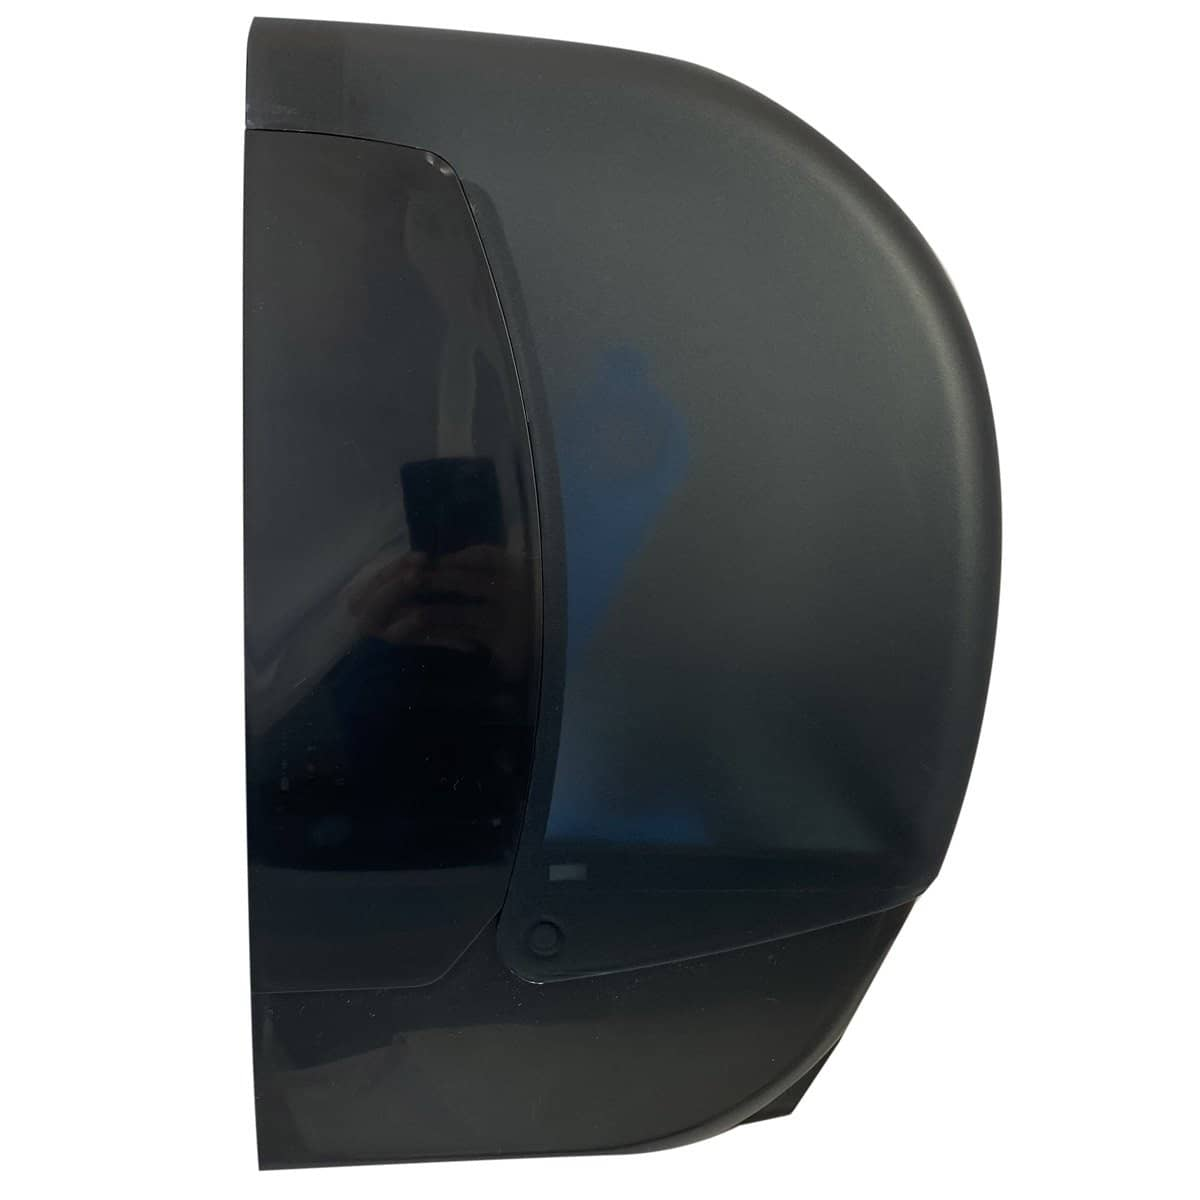 VISTA Electra Touchless Paper Towel Dispenser - PT2008 - TotalRestroom.com